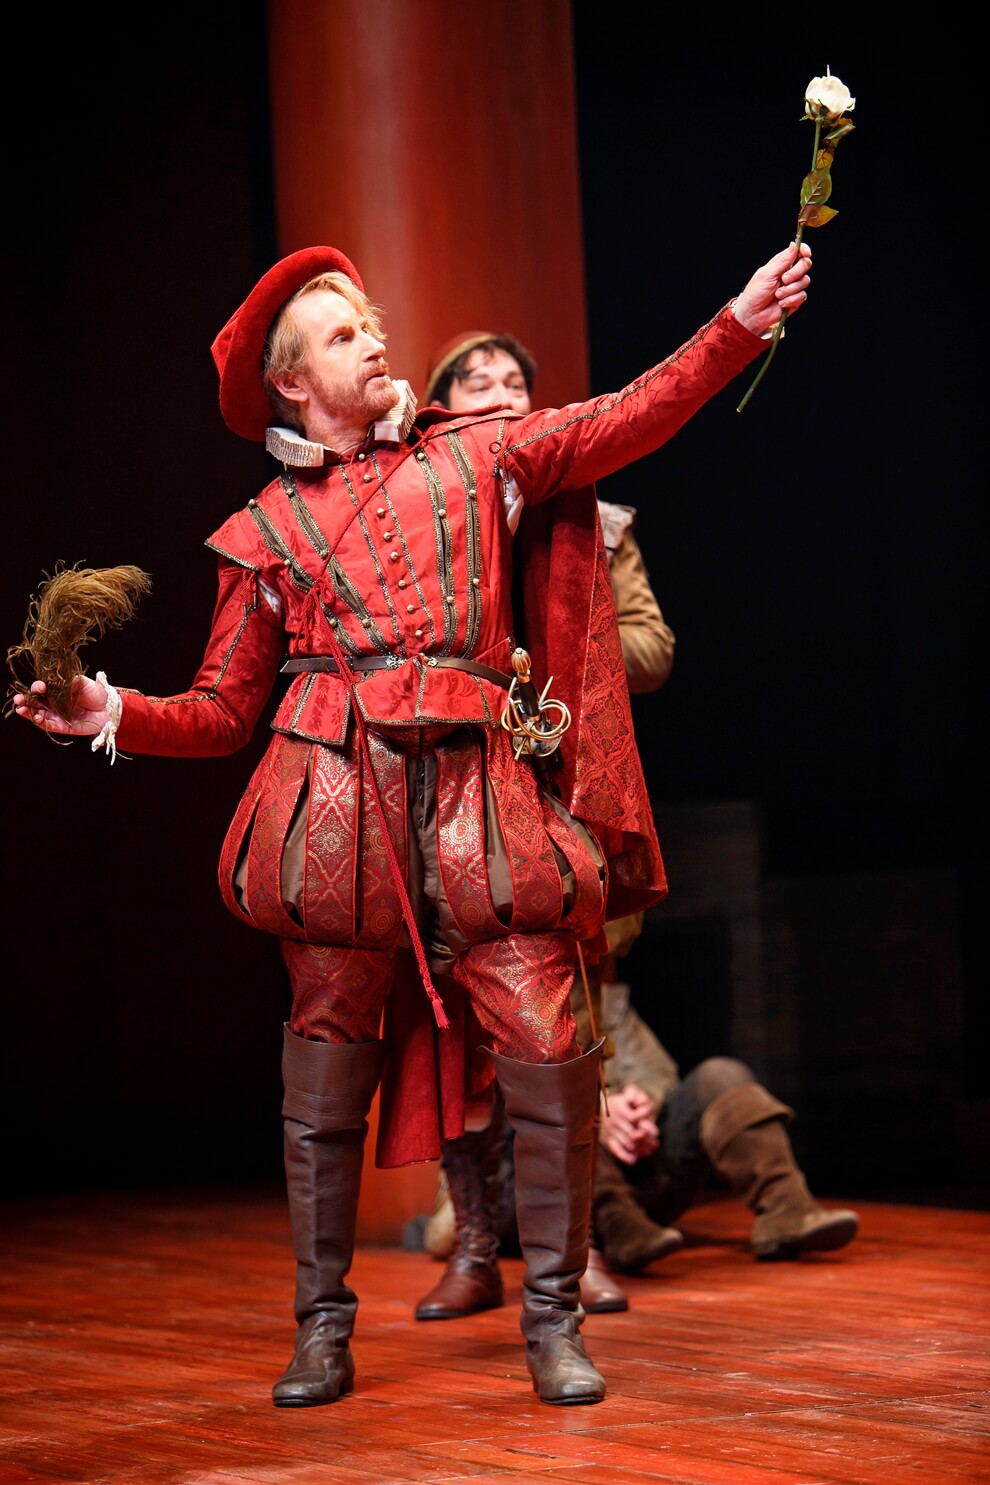 Costume cut by Jennifer Wonnacott, worn by Tom Rooney as Tranio in The Taming of the Shrew (Stratford Festival, 2015). Photo: David Hou